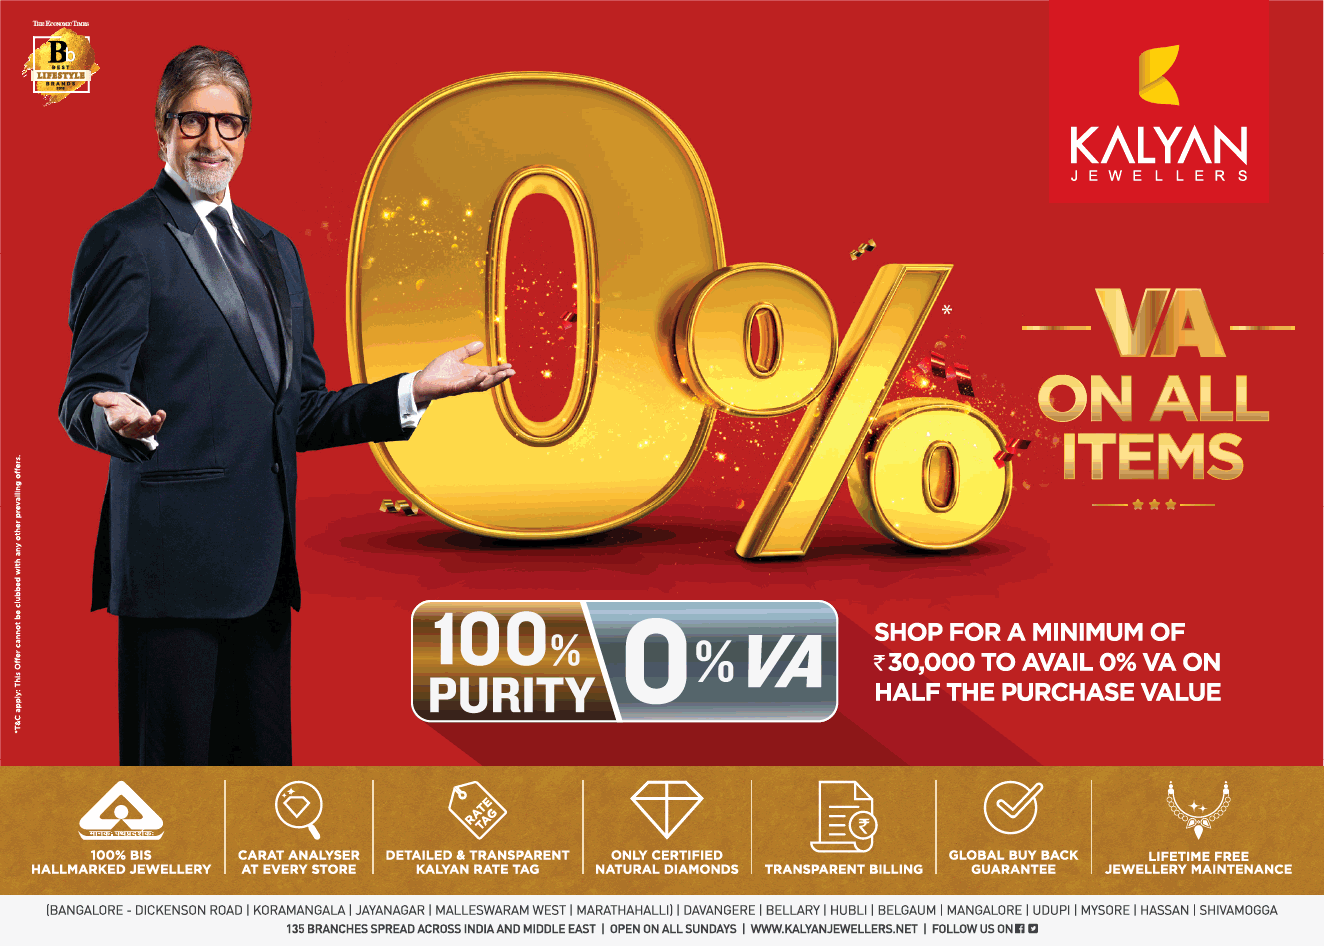 kalyan-jewellers-0%-va-on-all-items-ad-times-of-india-bangalore-01-02-2019.png